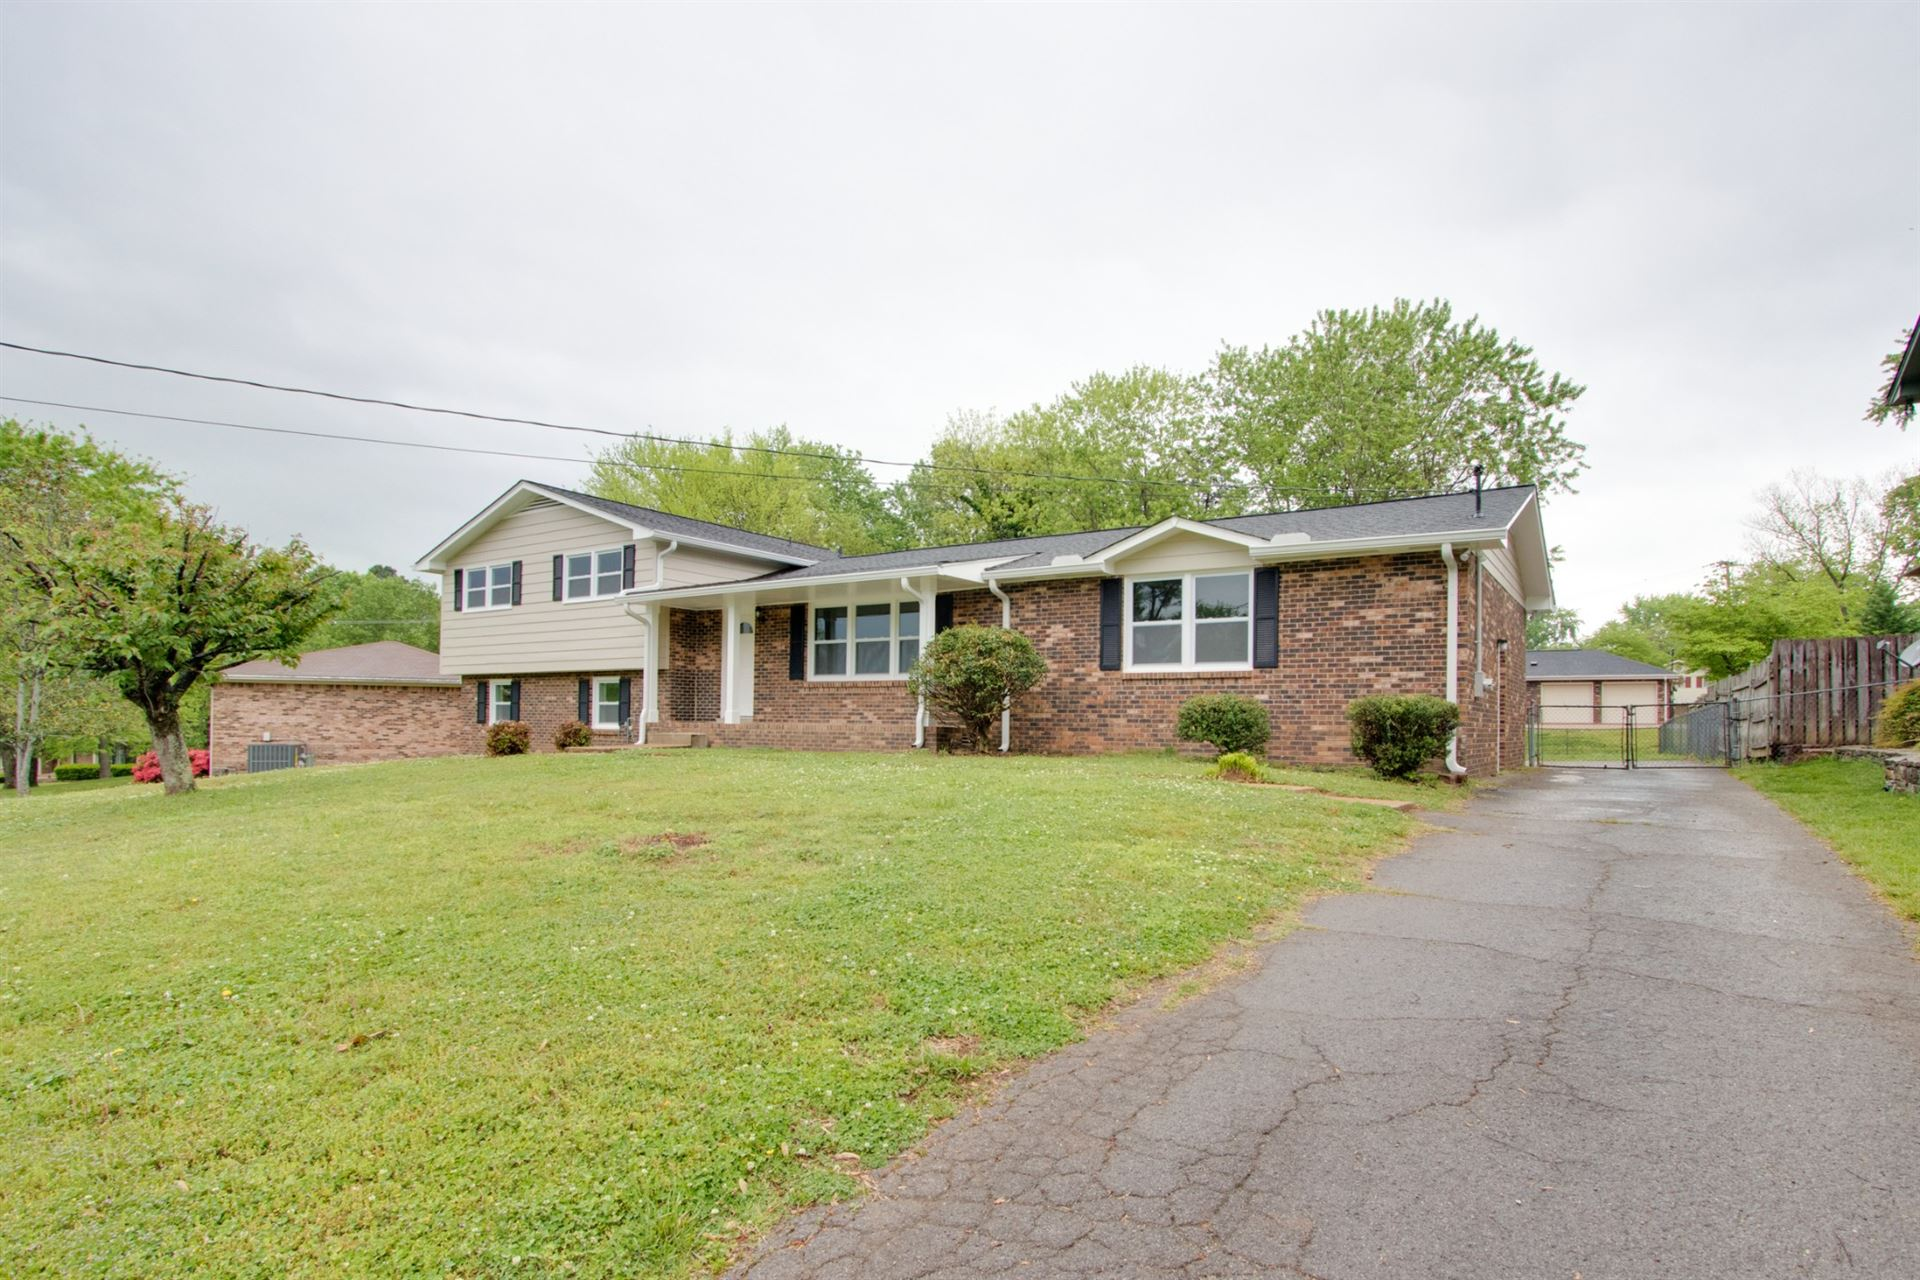 536 Frankfort Dr, Hermitage, TN 37076 - MLS#: 2249026